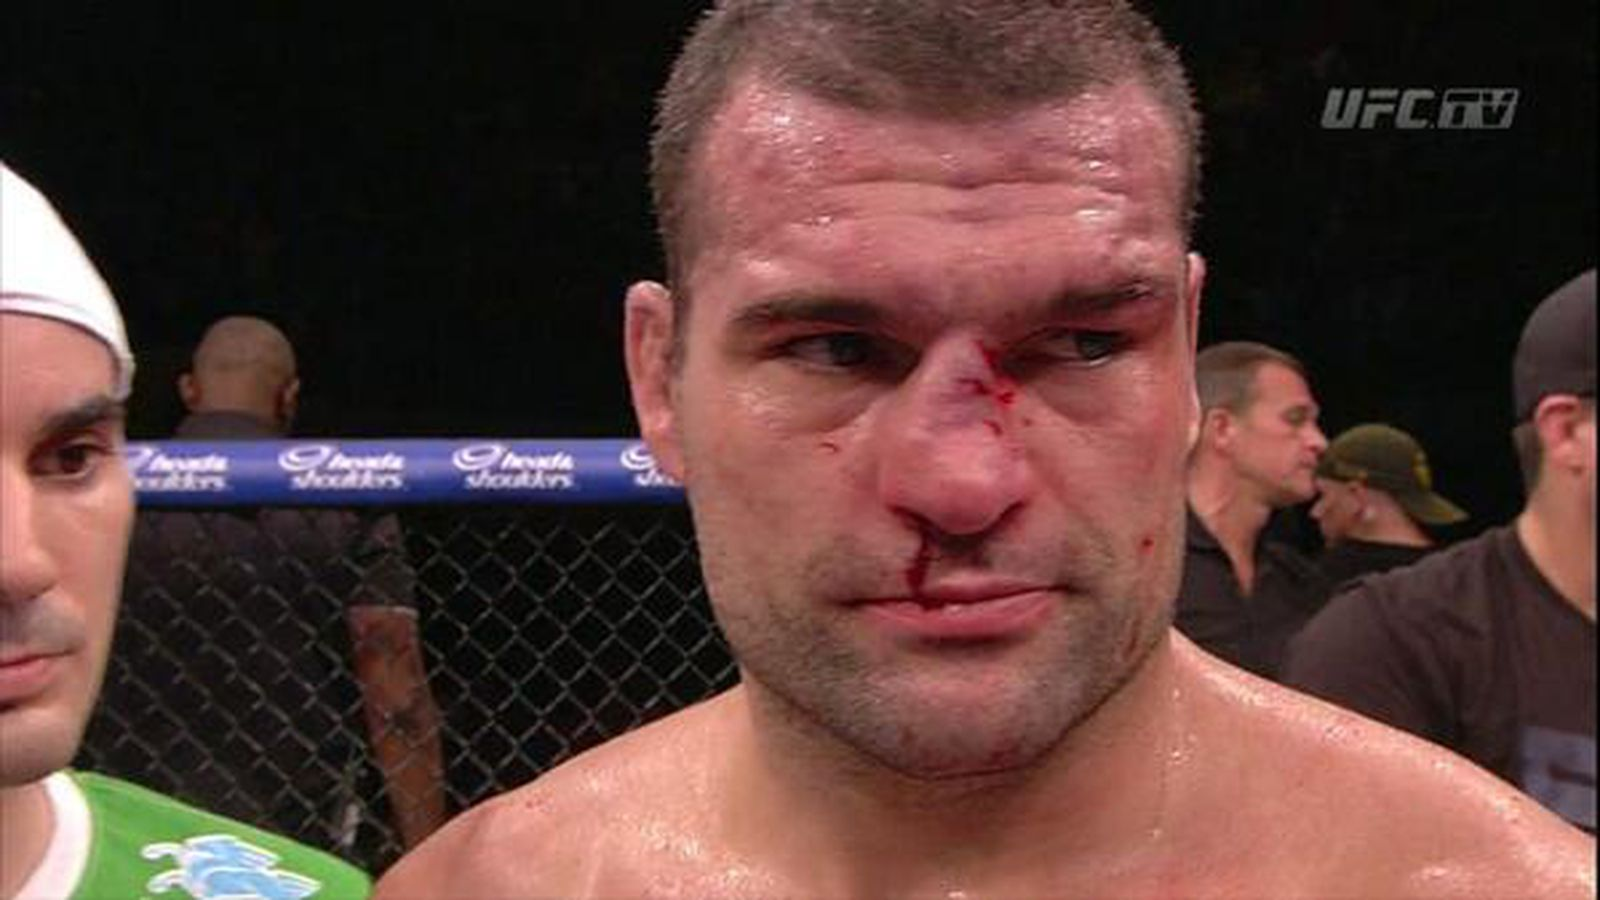 Mma fighter broken nose business! your